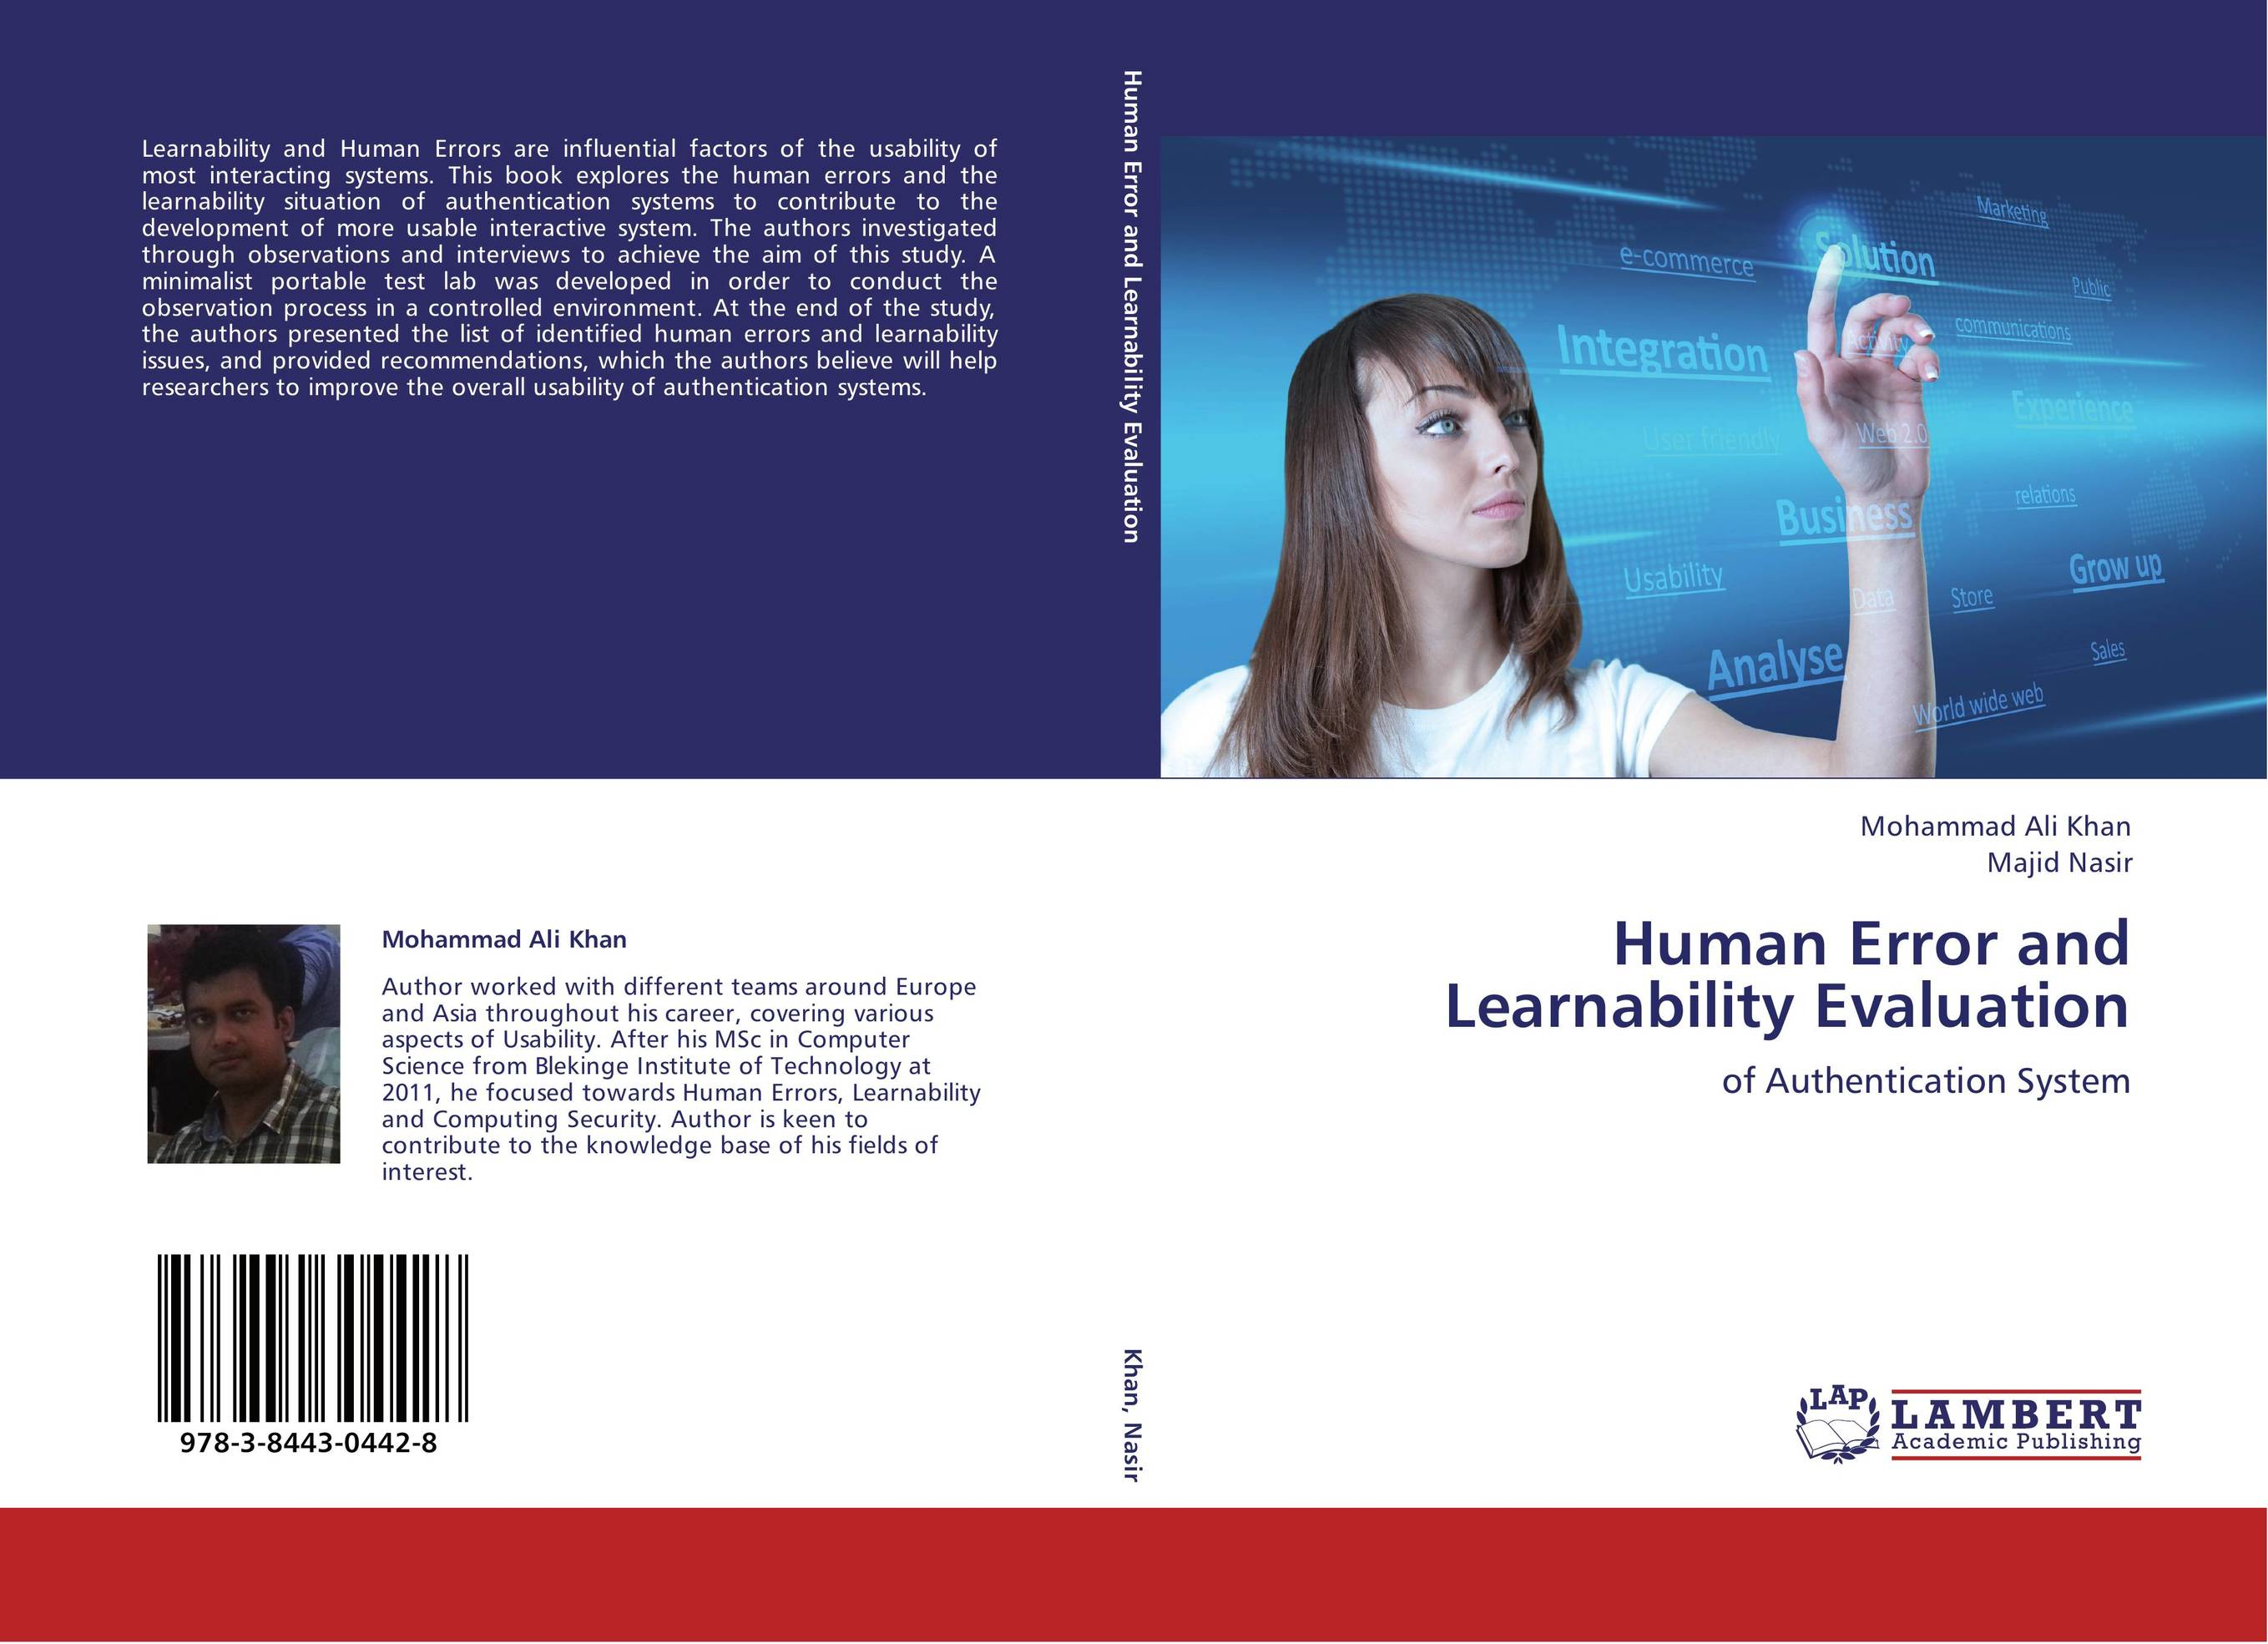 human error in maintenance computer science essay What is human computer interface how does human error influence it in an embedded system a human user is normally the frailest nexus the opportunities of a human operator to make a error in a computing machine system are higher than the existent constituents and or package to neglect.